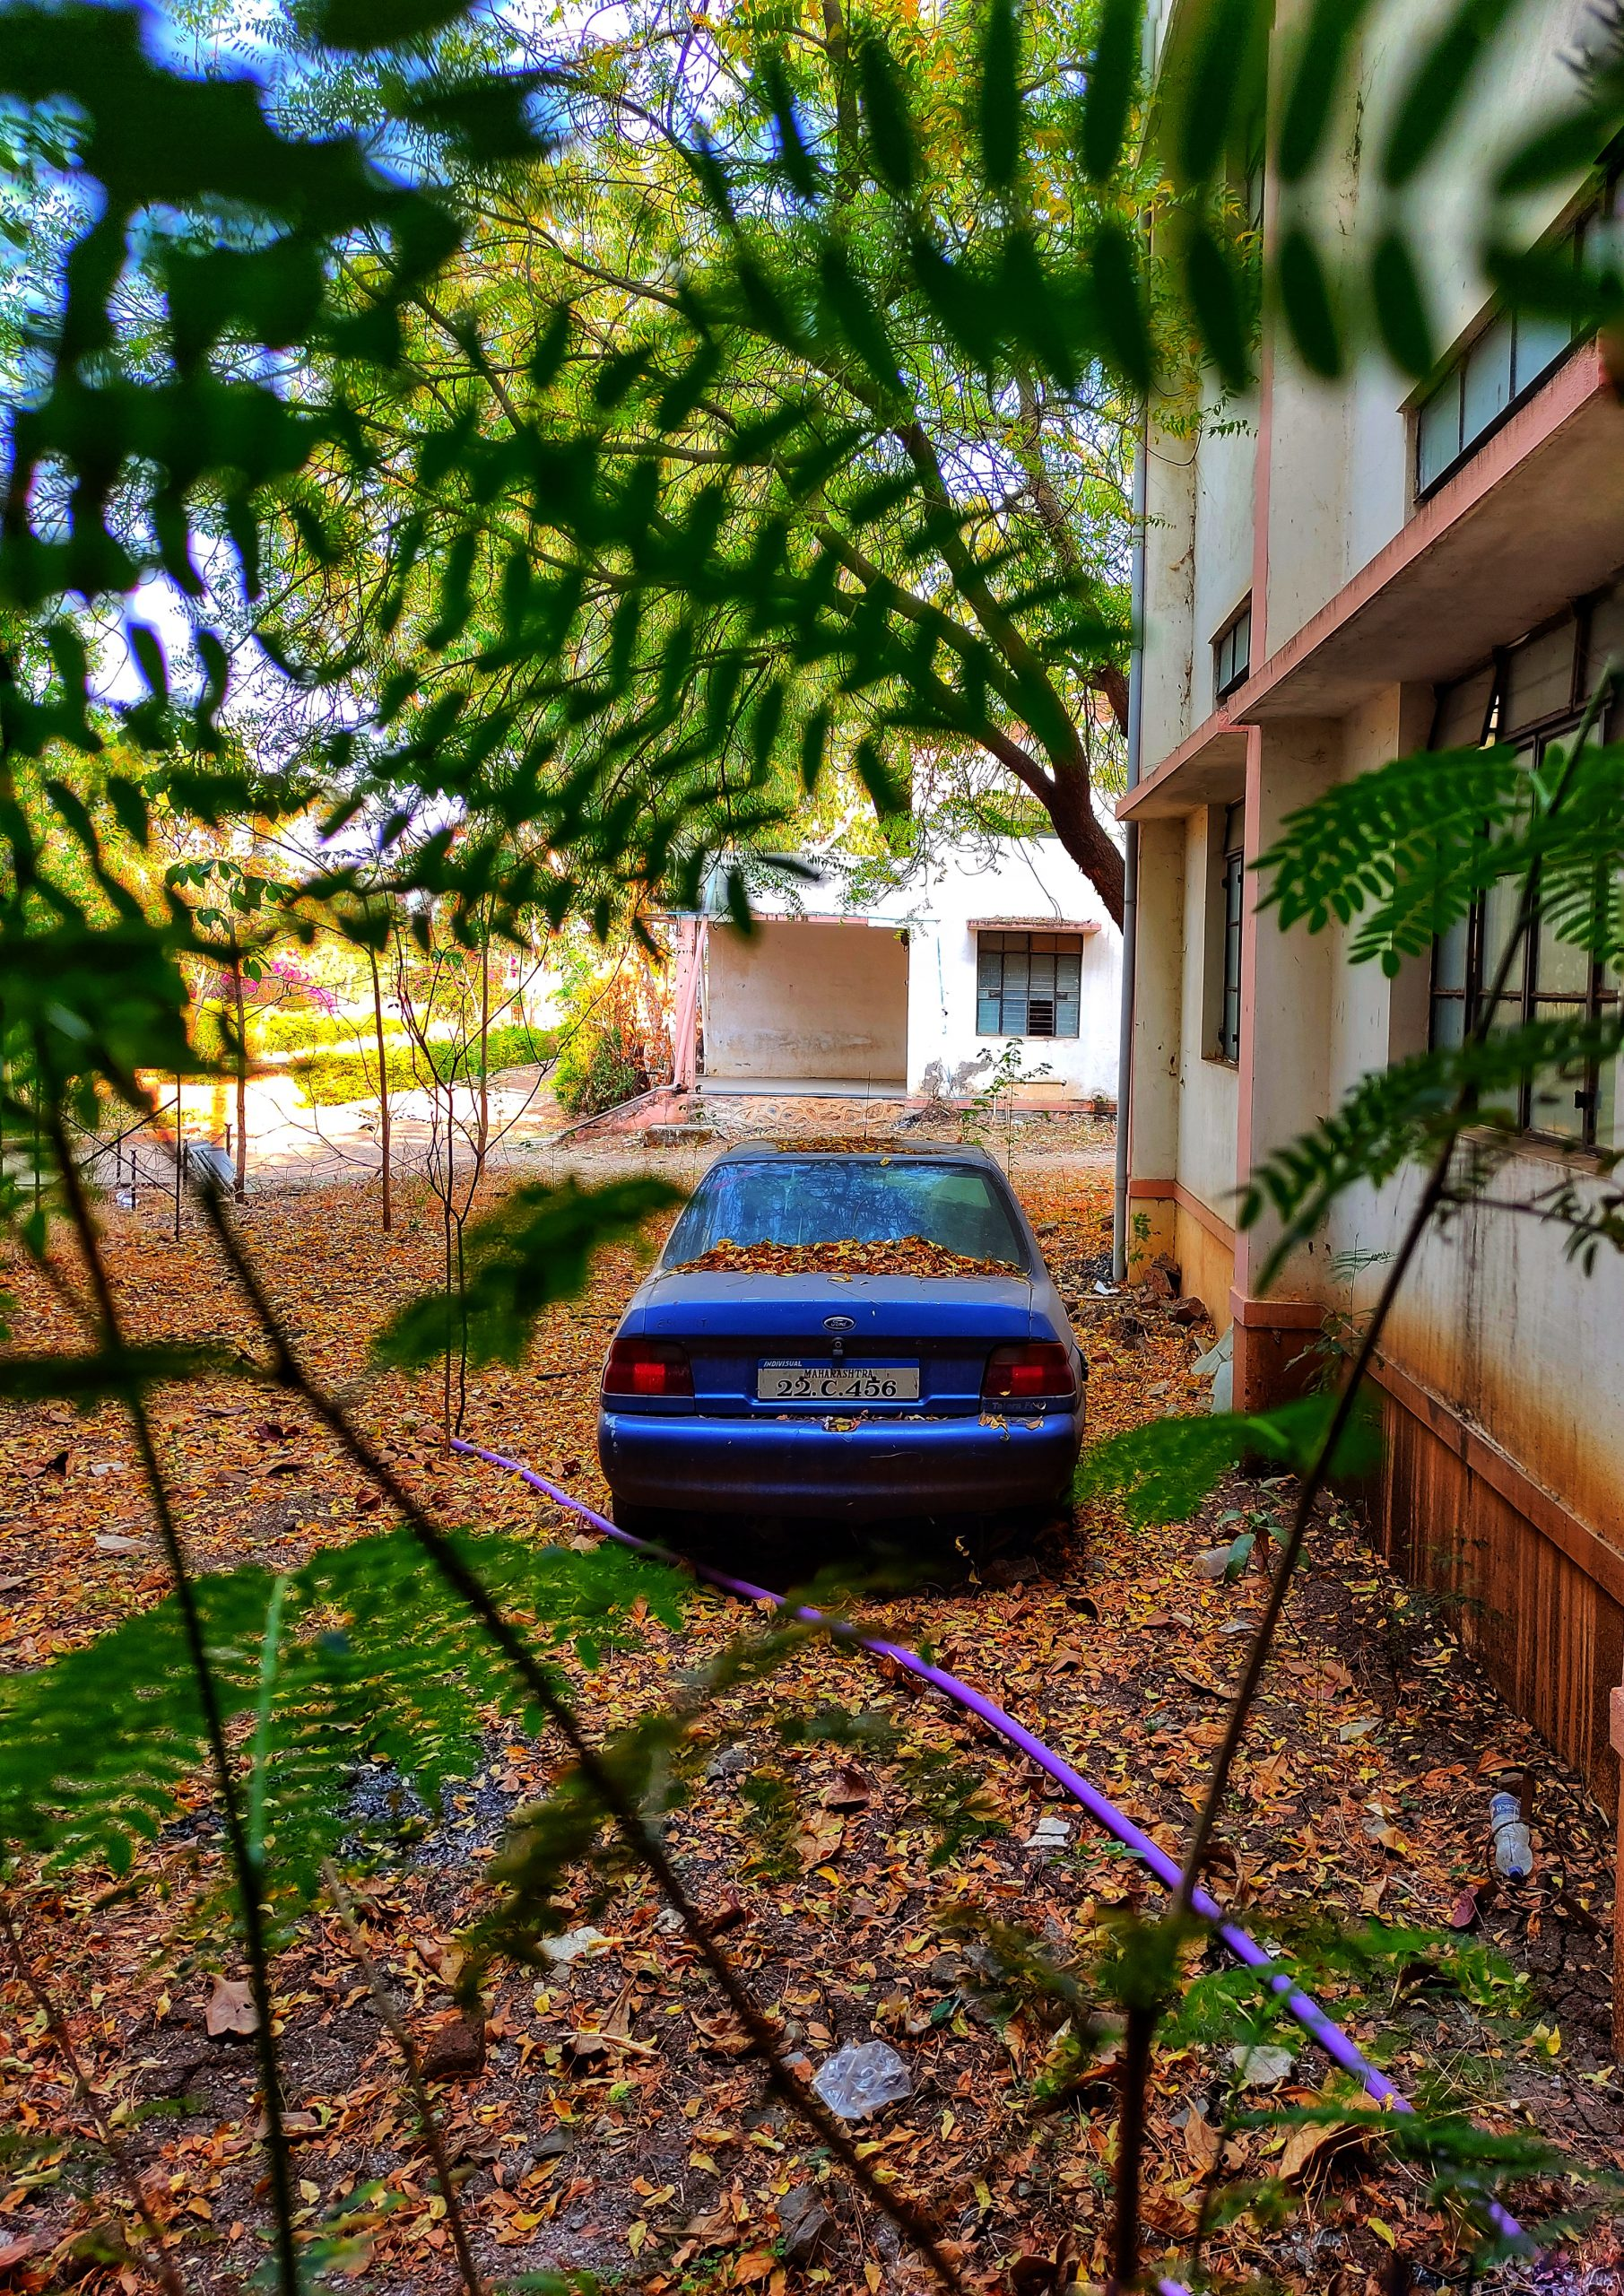 A car parked behind a house